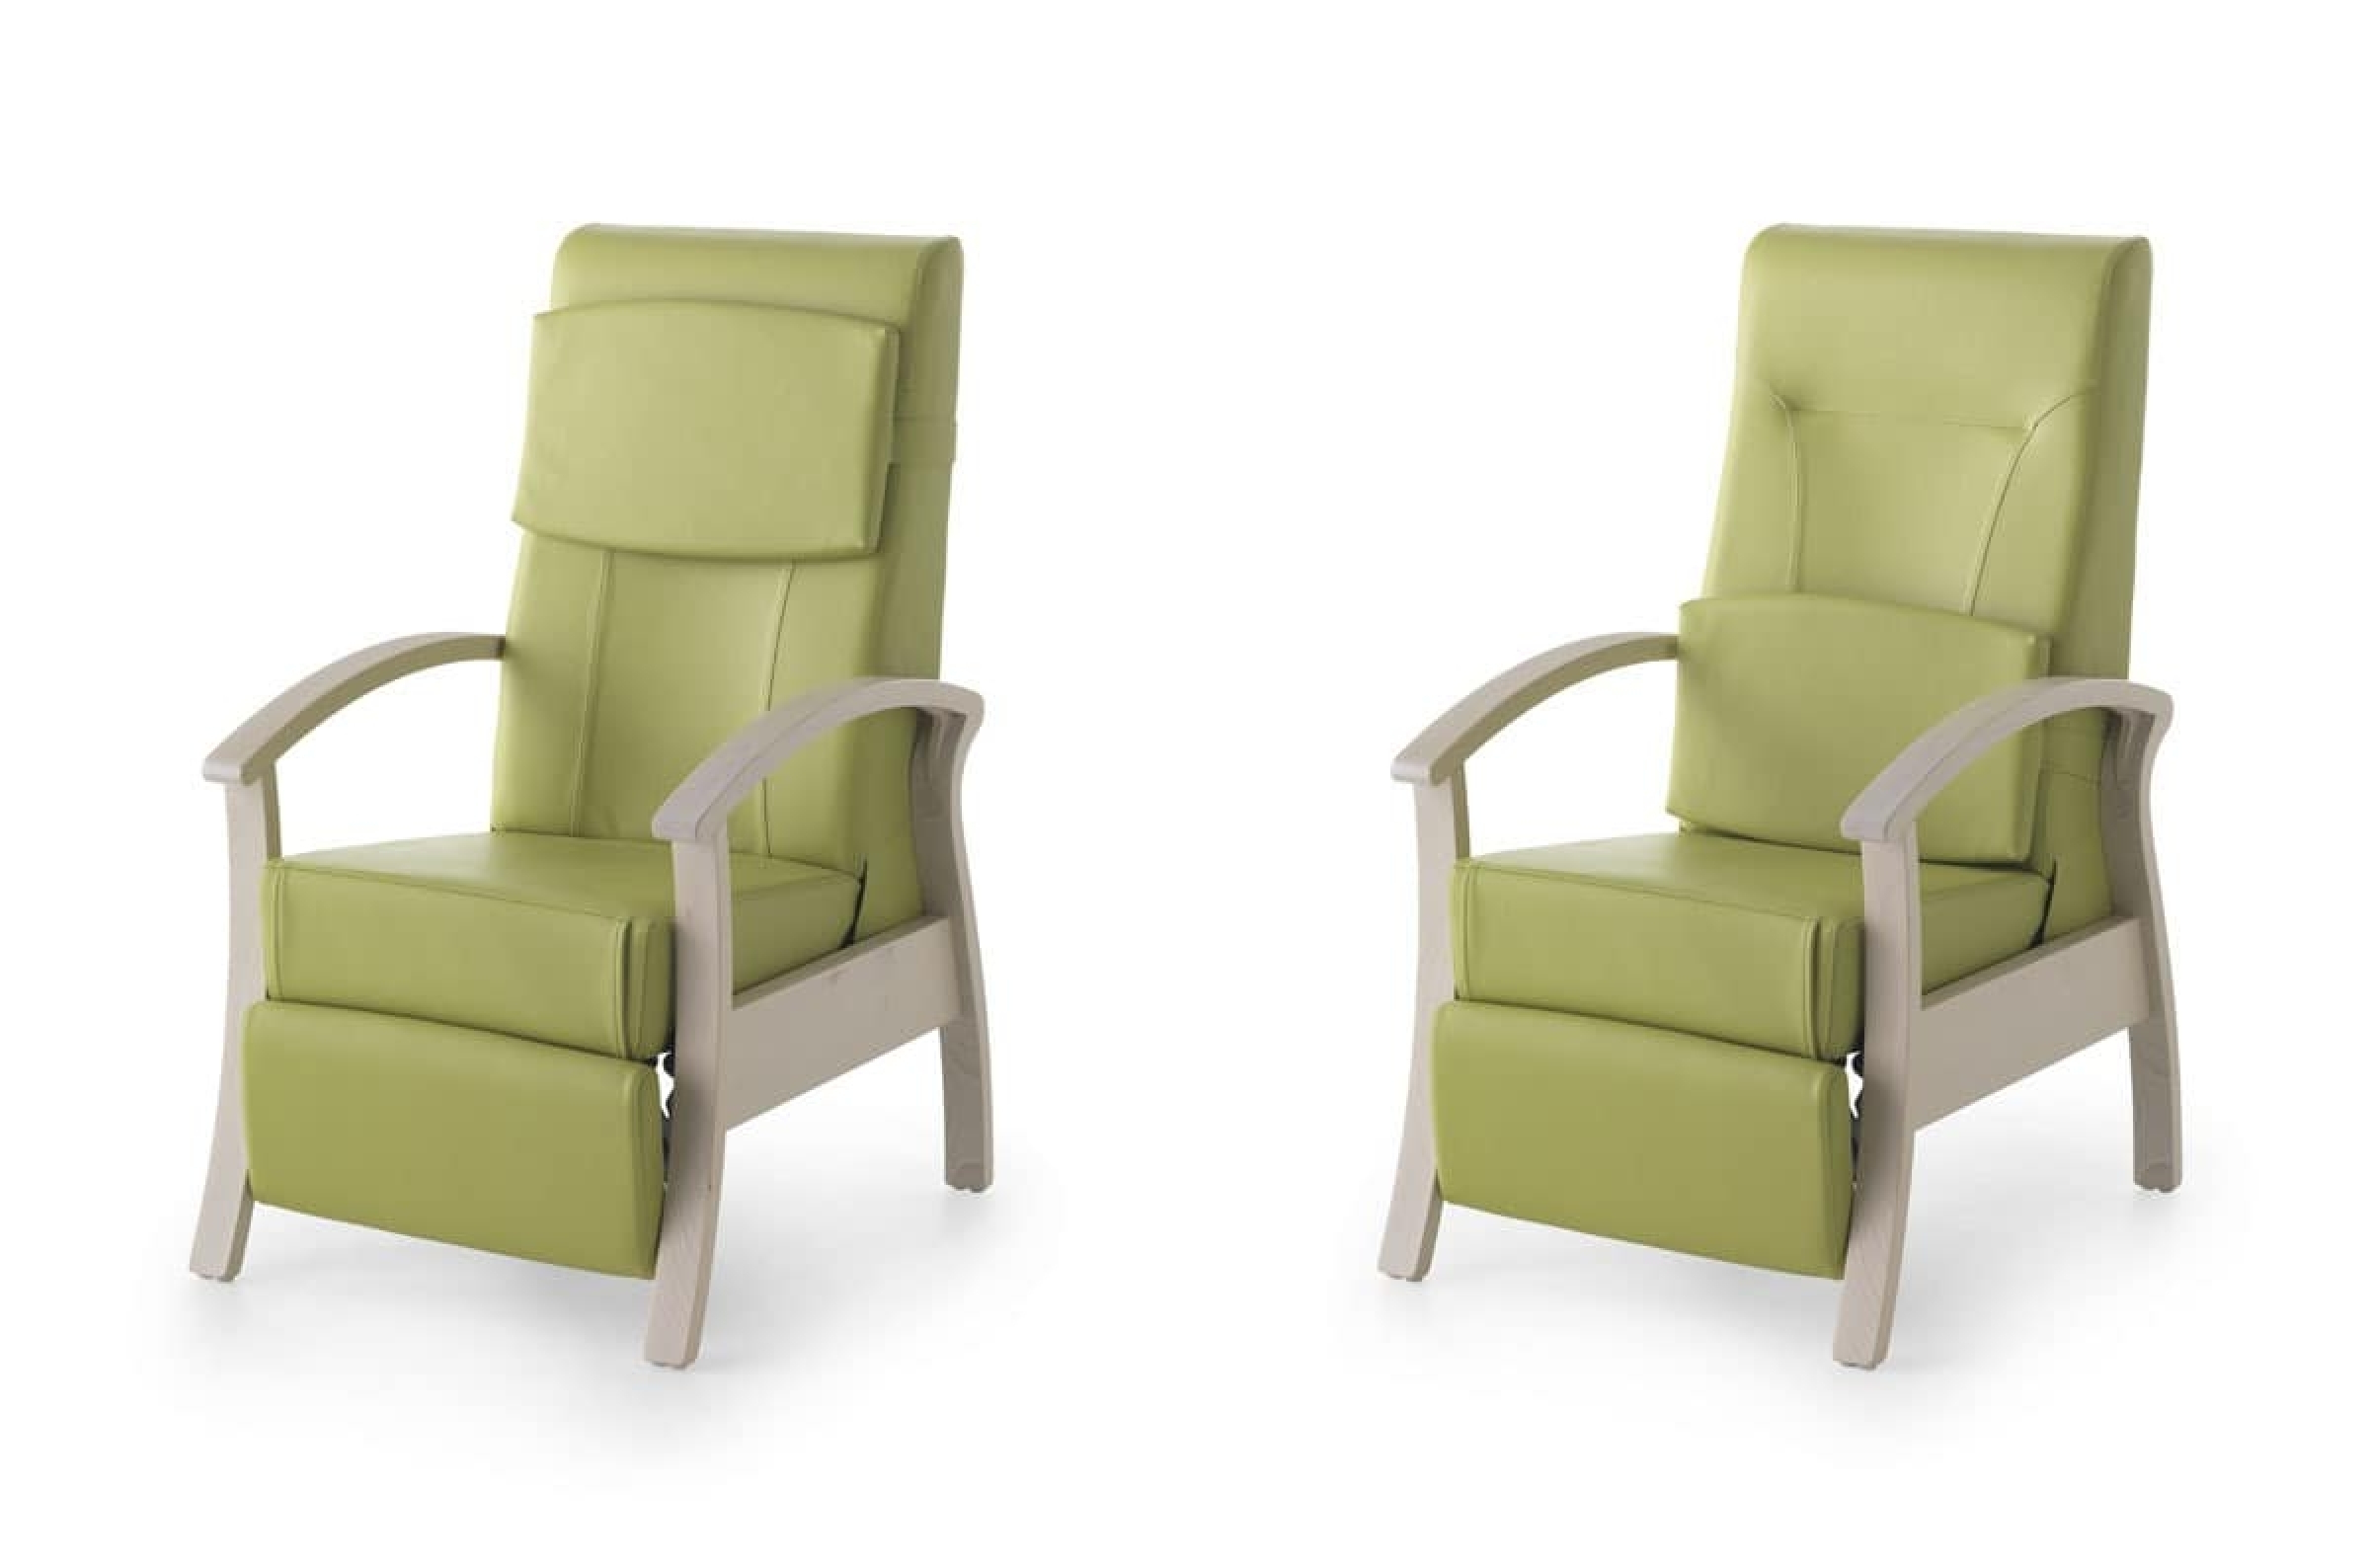 2019 50+ Armchairs For Elderly & Guide How To Choose The Best For Popel Armchairs (View 6 of 20)